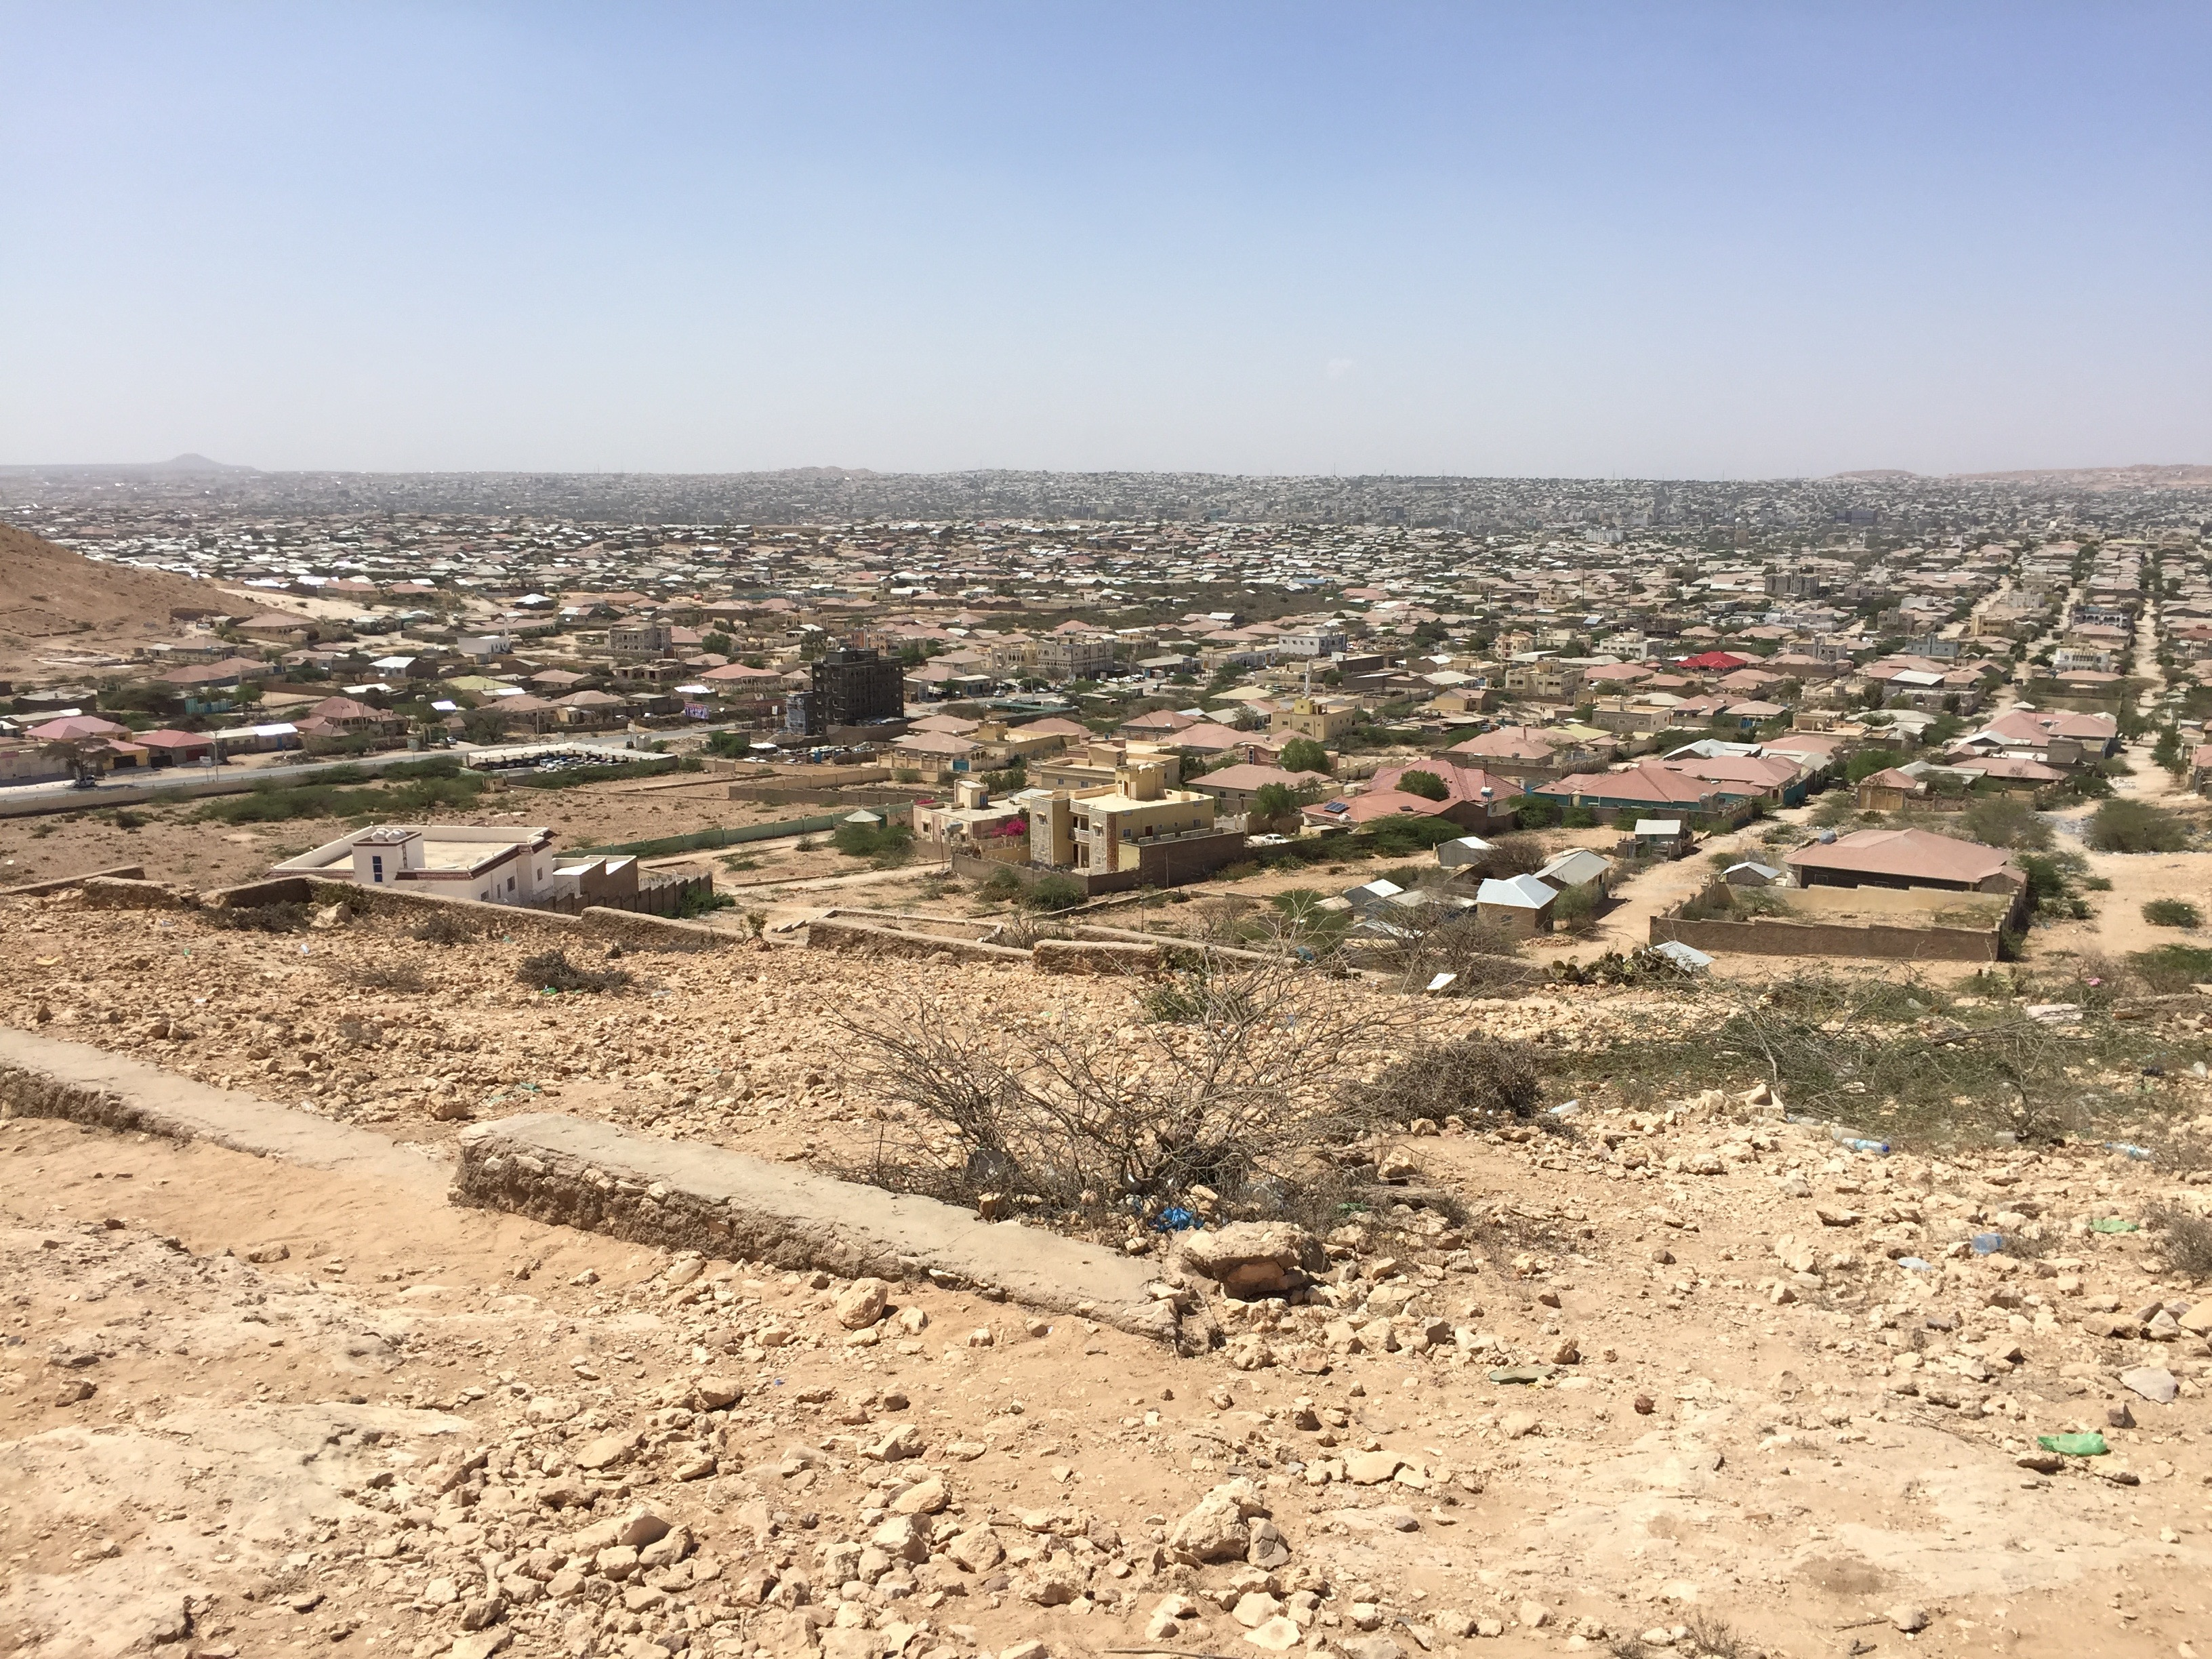 Landscape view of Hargeisa, Somaliland, March 29, 2016. (J. Craig/VOA)